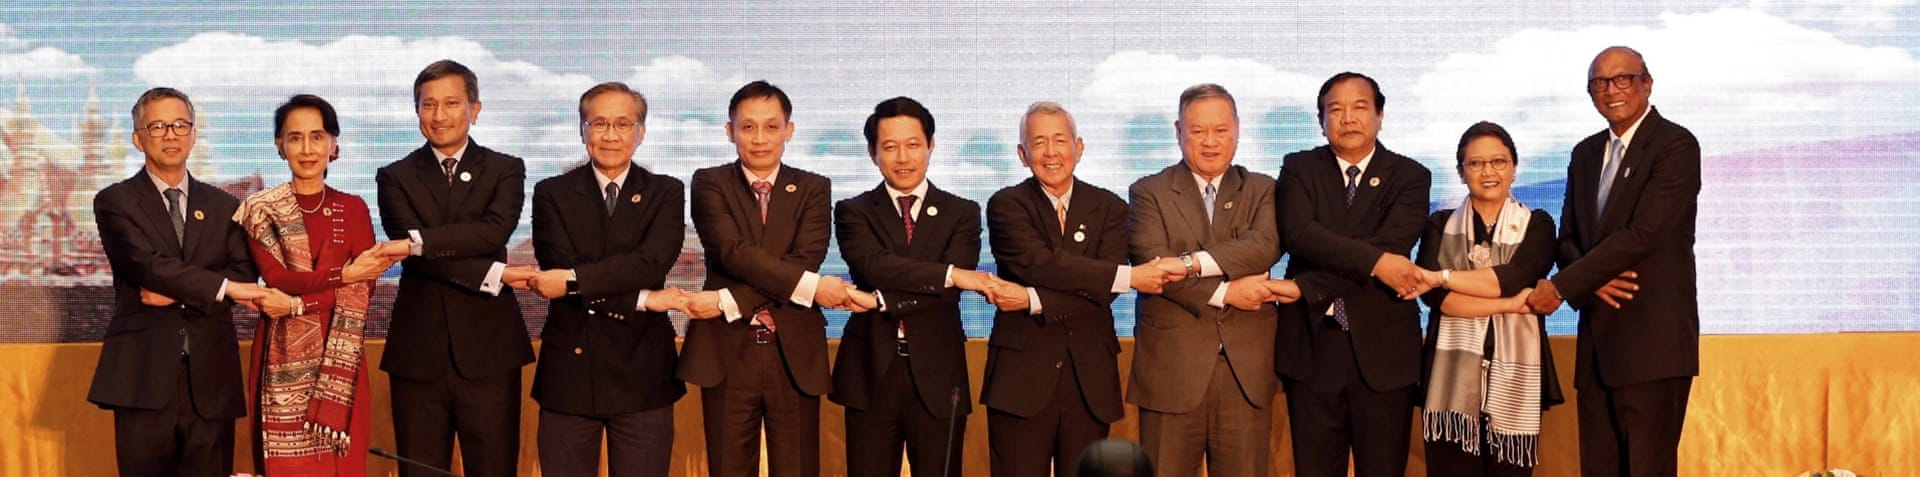 Officials said talks between leaders of ASEAN and China went smoothly [Reuters]